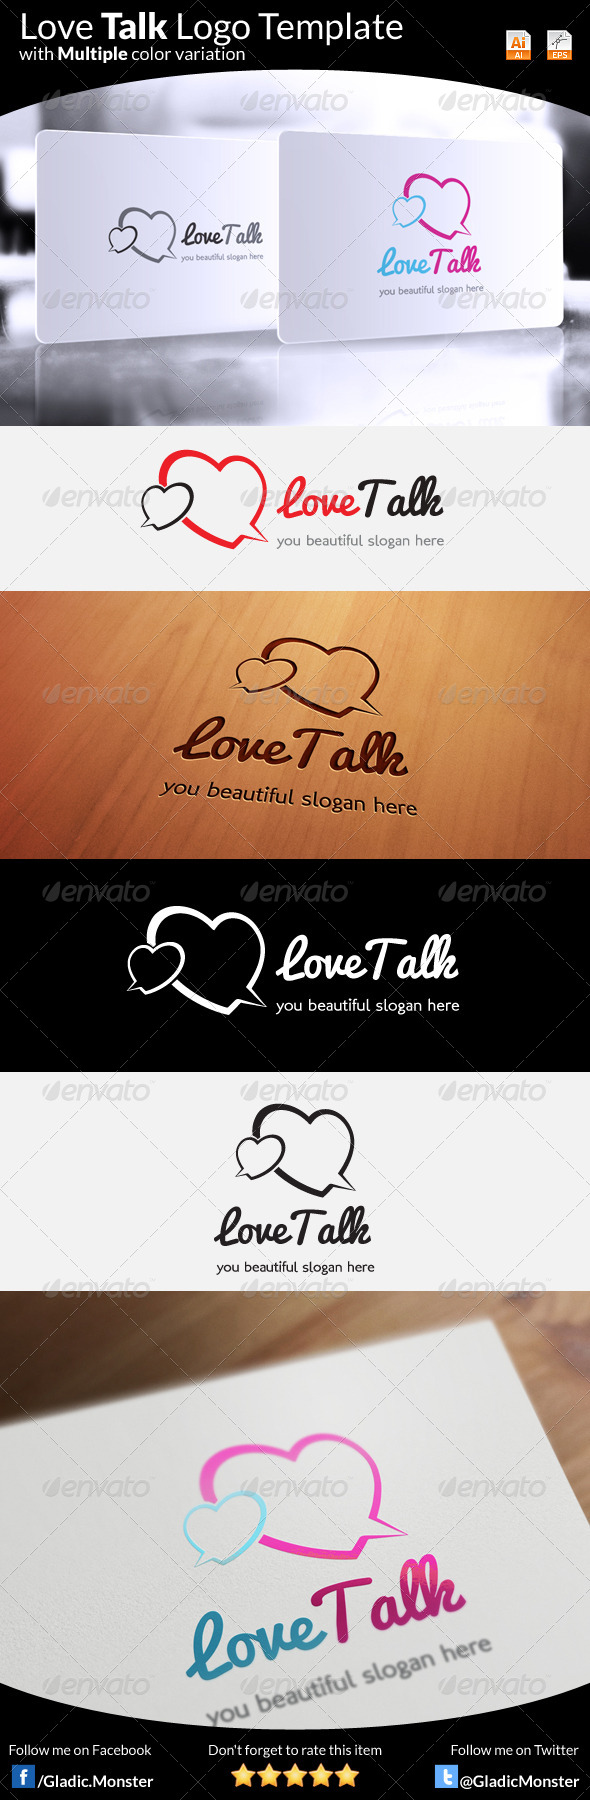 Love Talk Logo